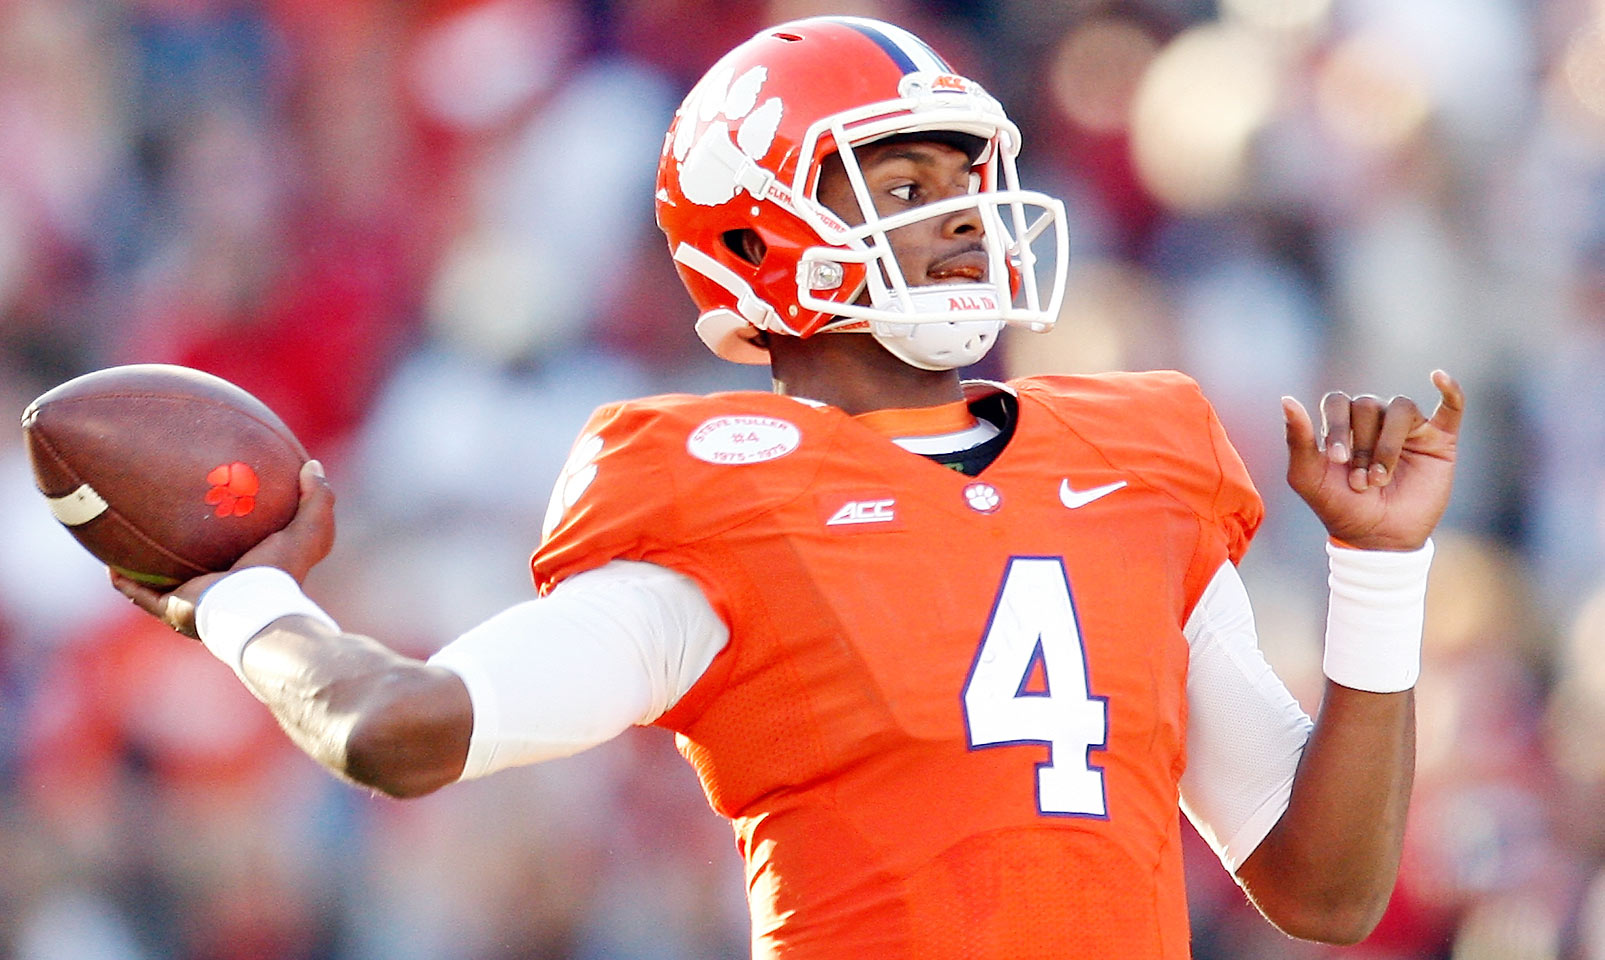 Watson missed five games last season due to injuries, including Clemson's Russell Athletic Bowl victory while he recovered from a torn ACL. Watson is said to be ahead of schedule in his rehab and should build on a true freshman season in which he threw for over 1,400 yards in eight games.